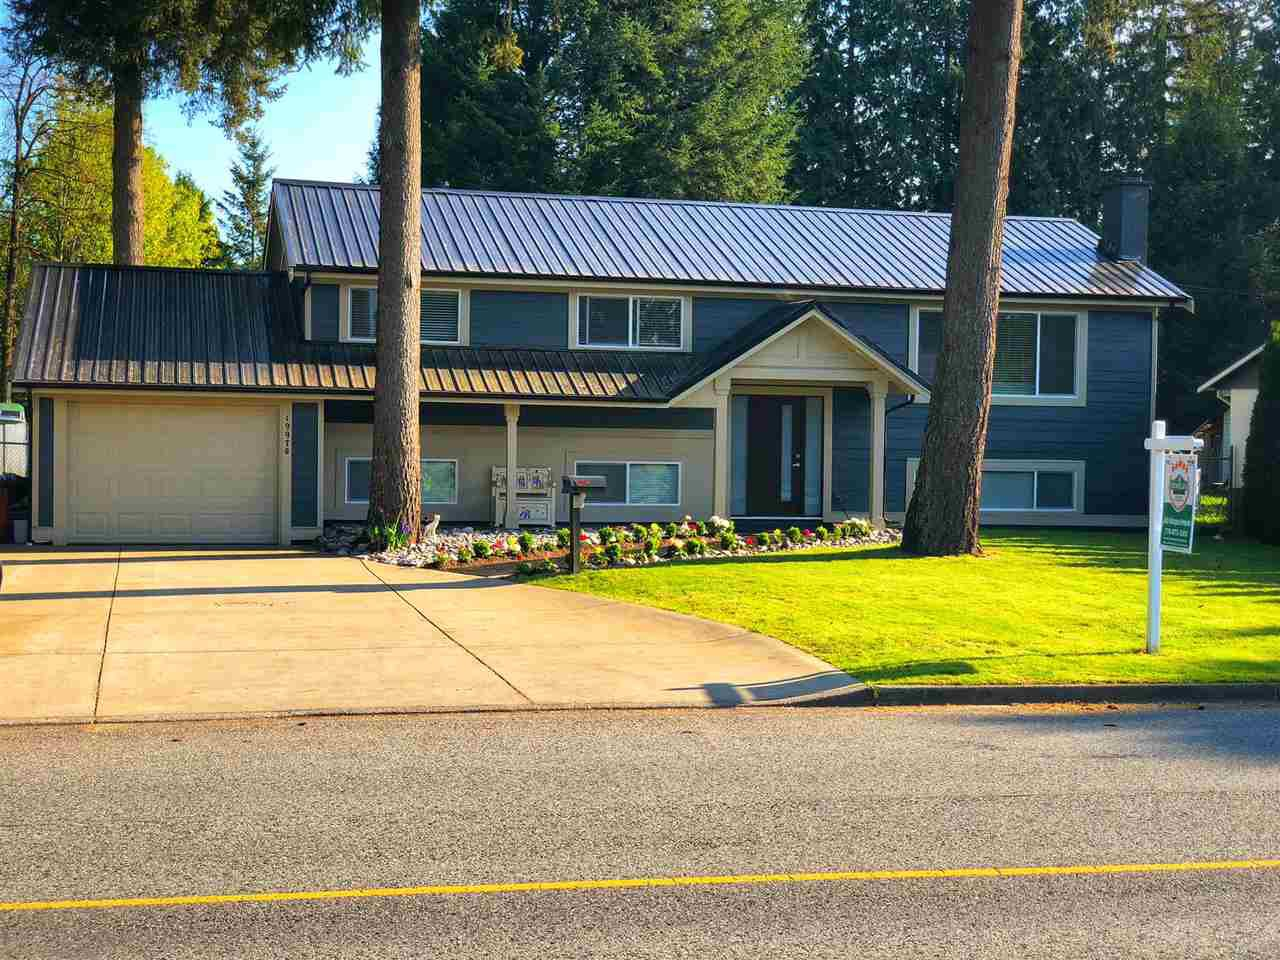 Main Photo: 19970 50 Avenue in Langley: Langley City House for sale : MLS®# R2296312